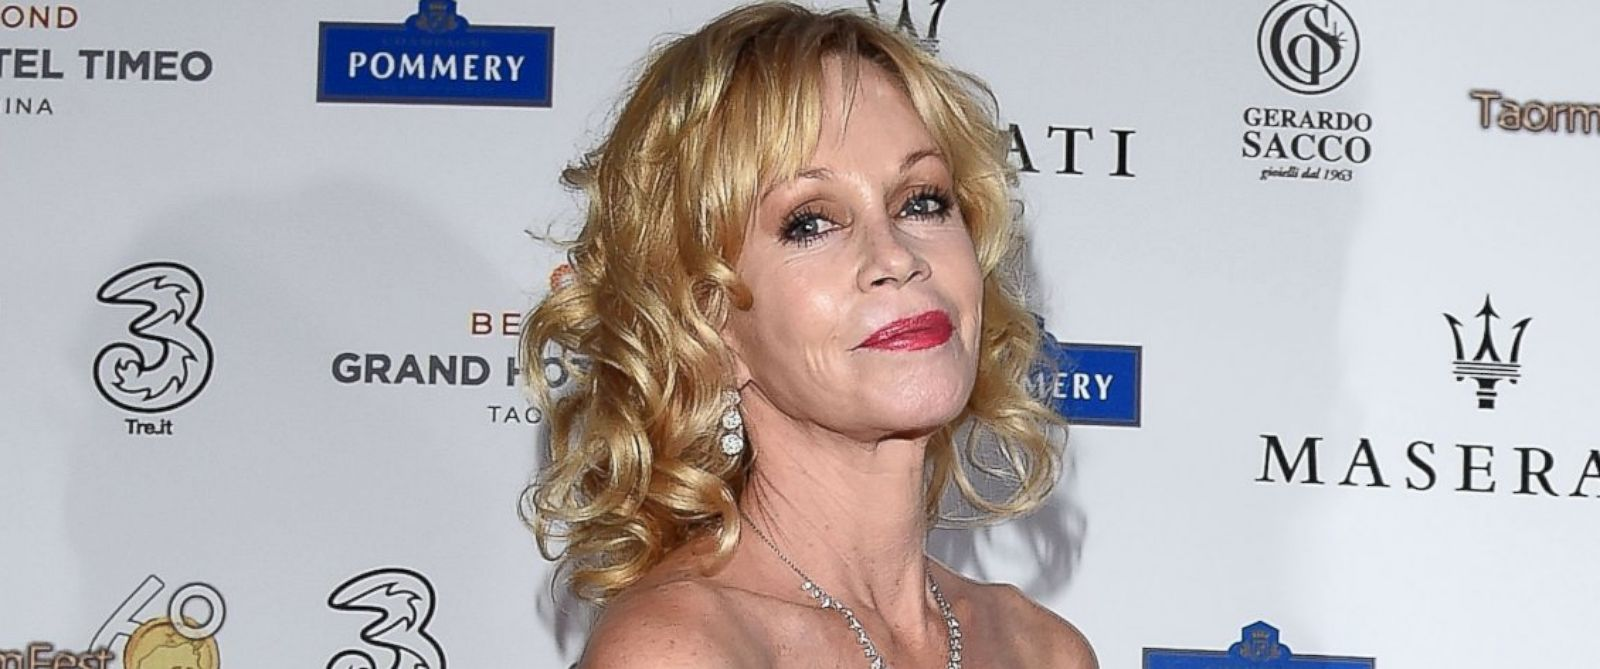 PHOTO: Melanie Griffith attends the 60th Taormina Film Fest on June 19, 2014 in Taormina, Italy.